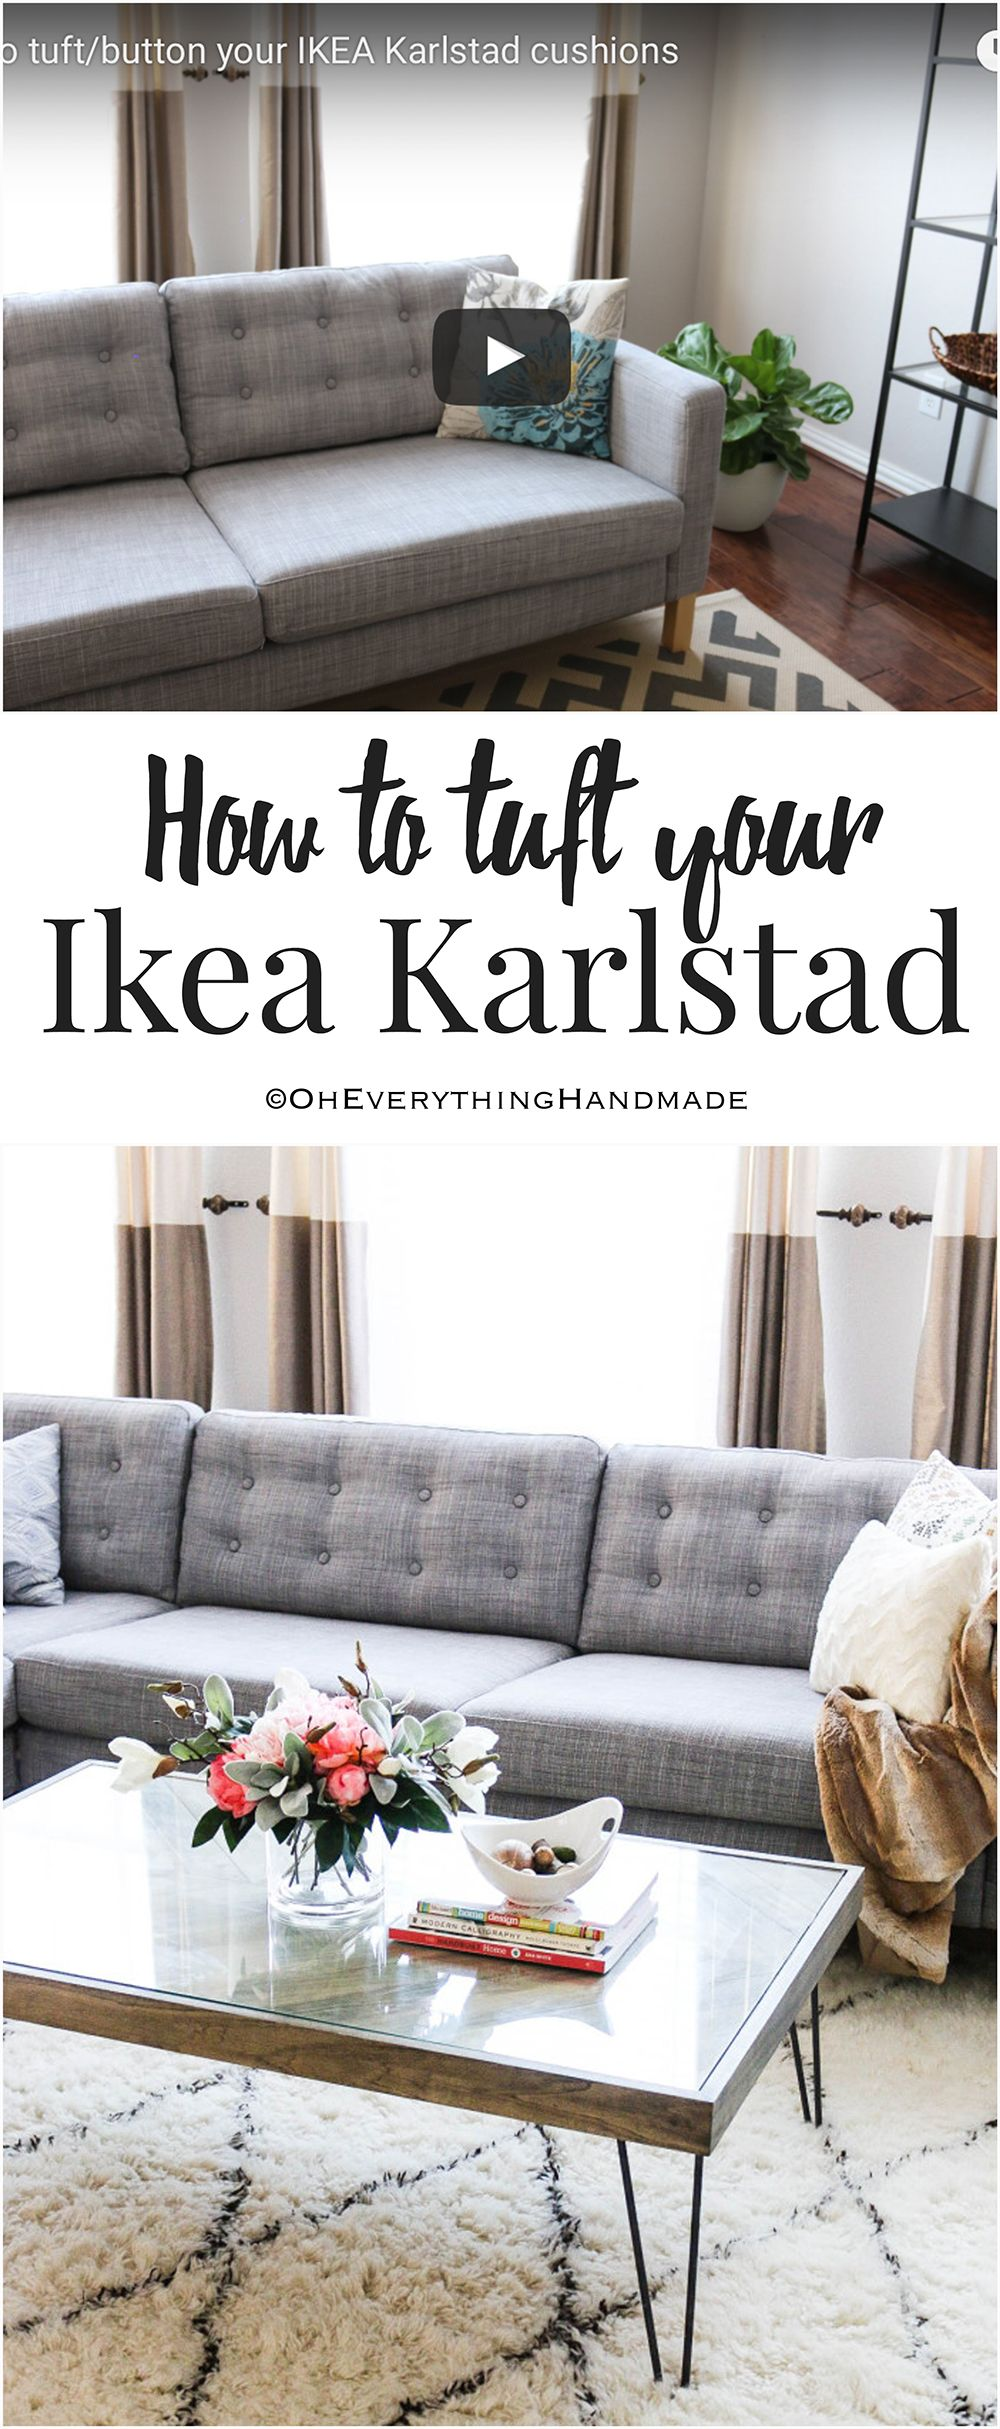 diy how to tuft button your ikea karlstad cushions diy wohnen diy m bel und einrichtung. Black Bedroom Furniture Sets. Home Design Ideas